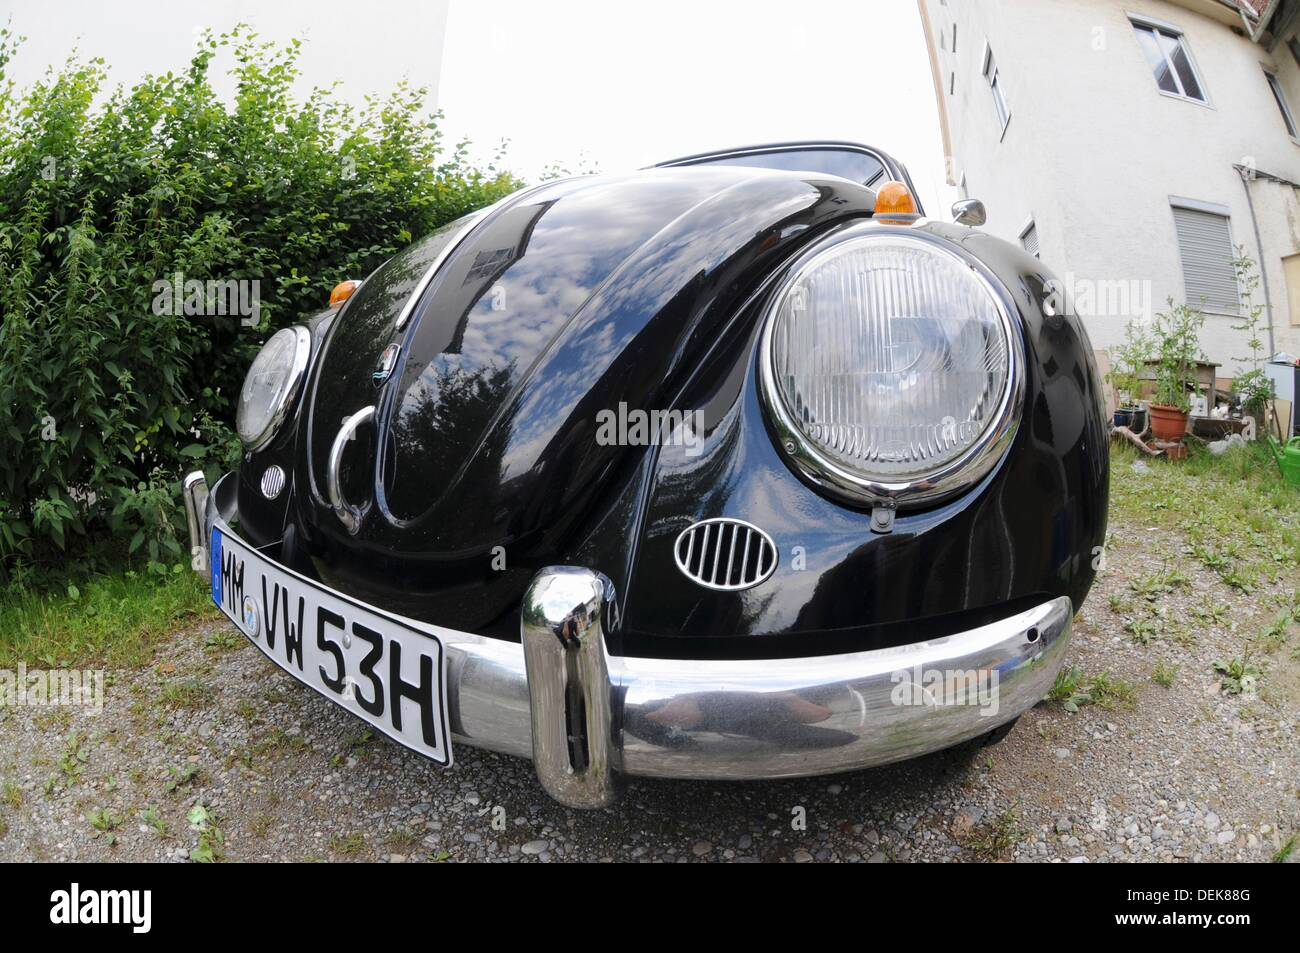 Old VW Beetle from the fisheye perspective - Stock Image